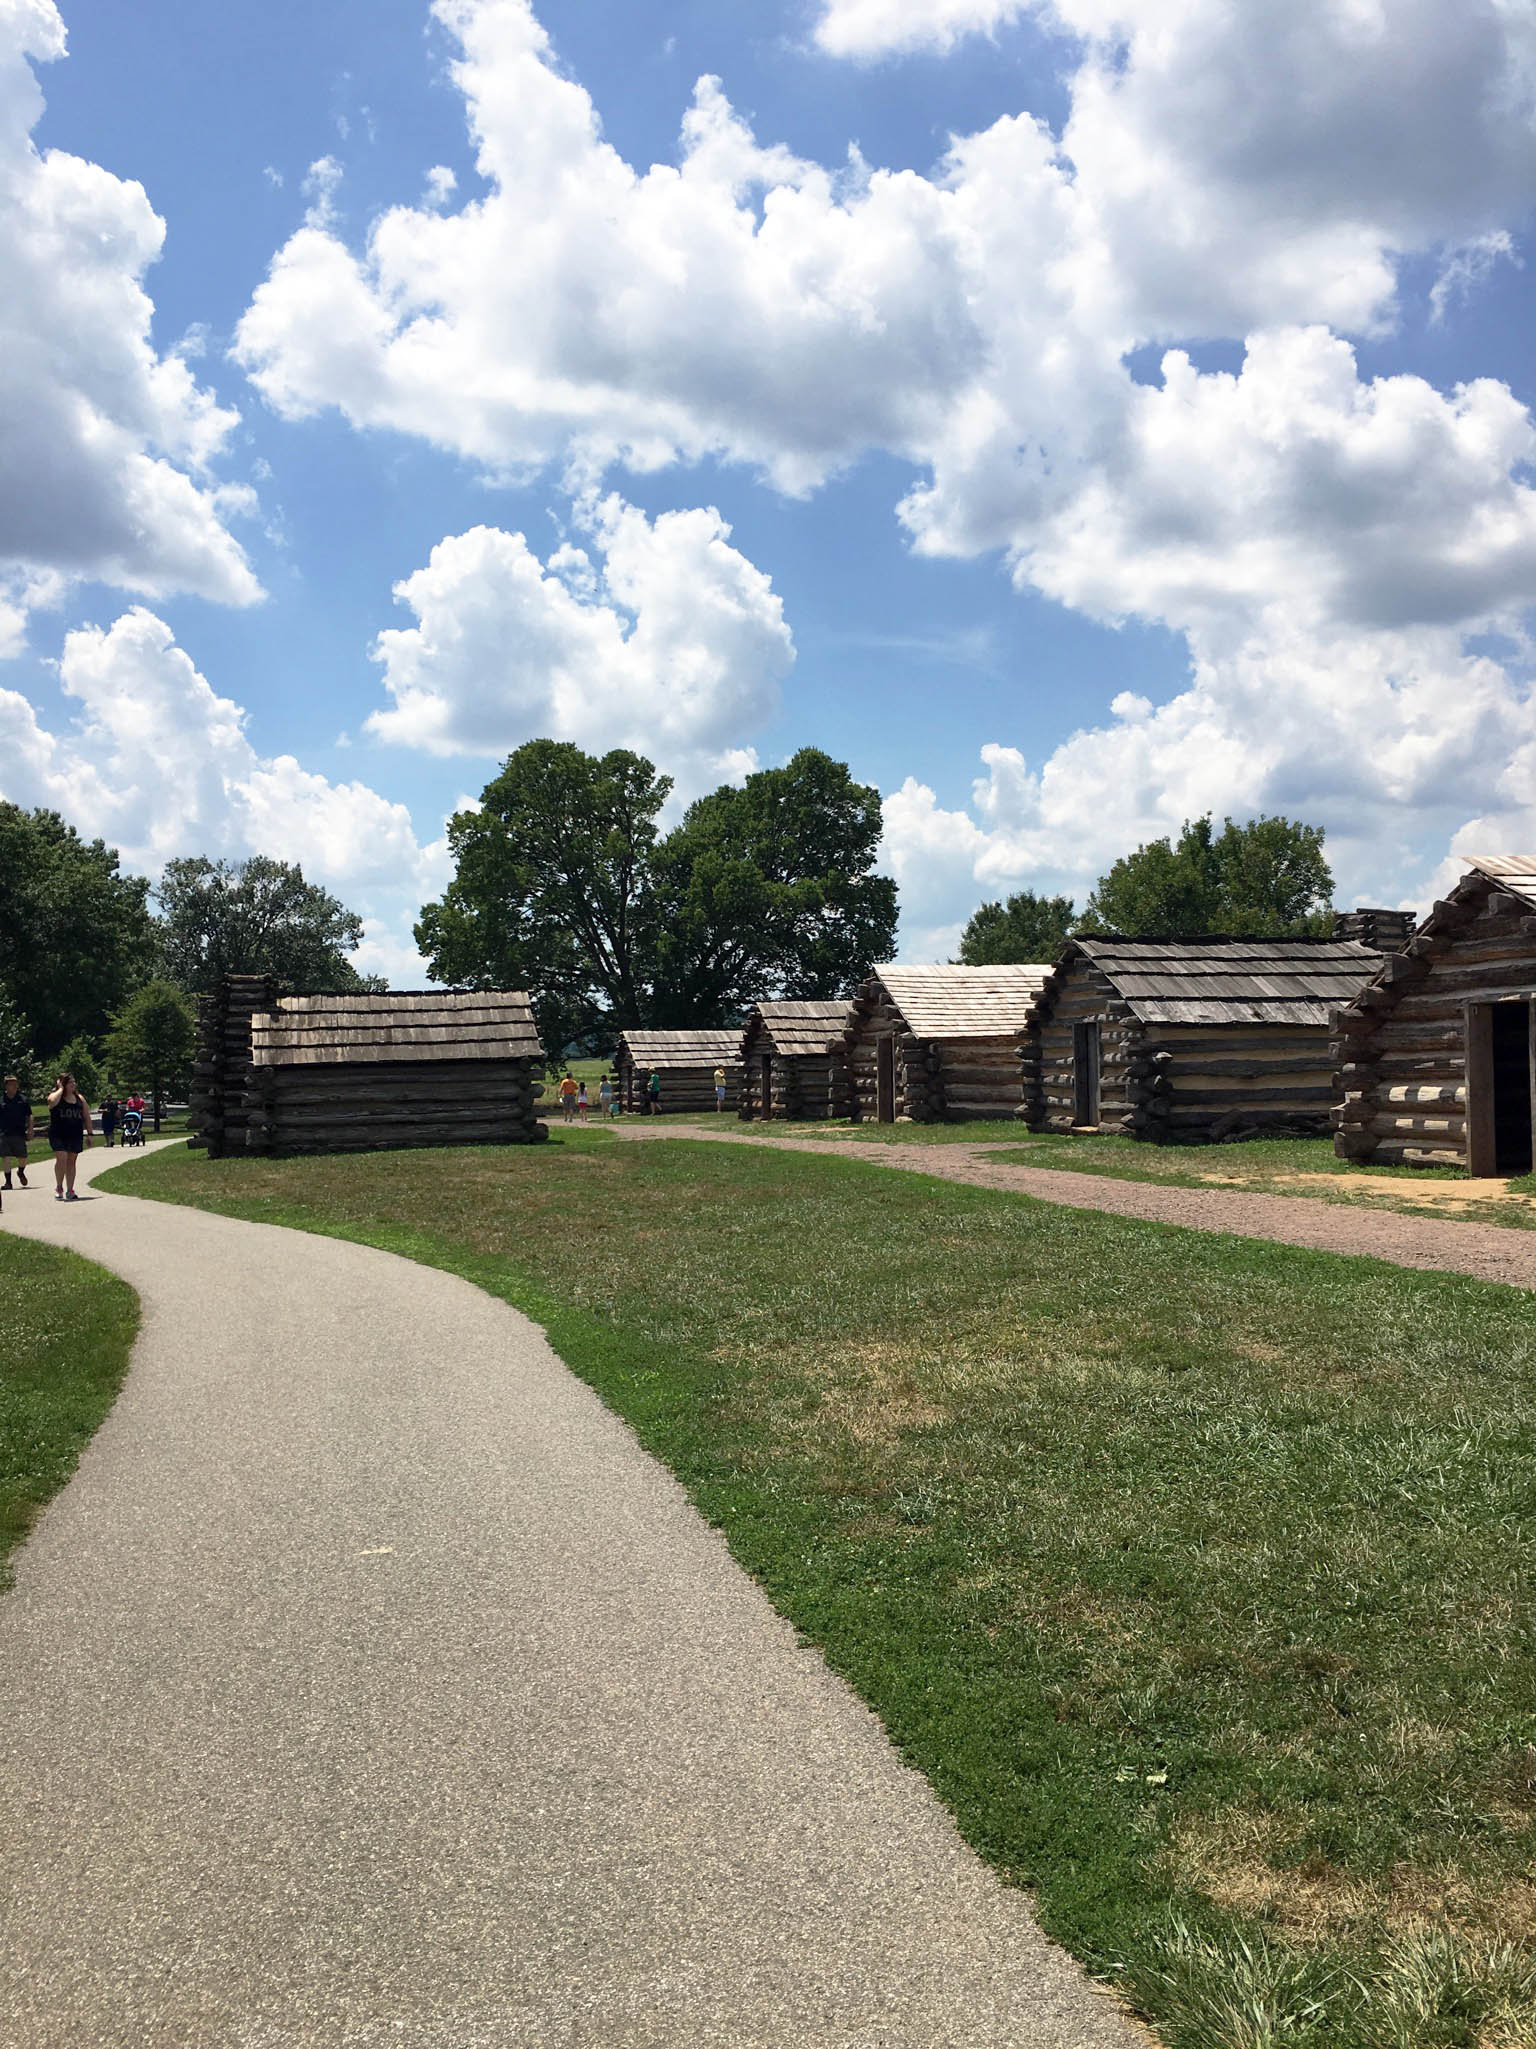 Replicas of encampment barracks in Artillery Park.